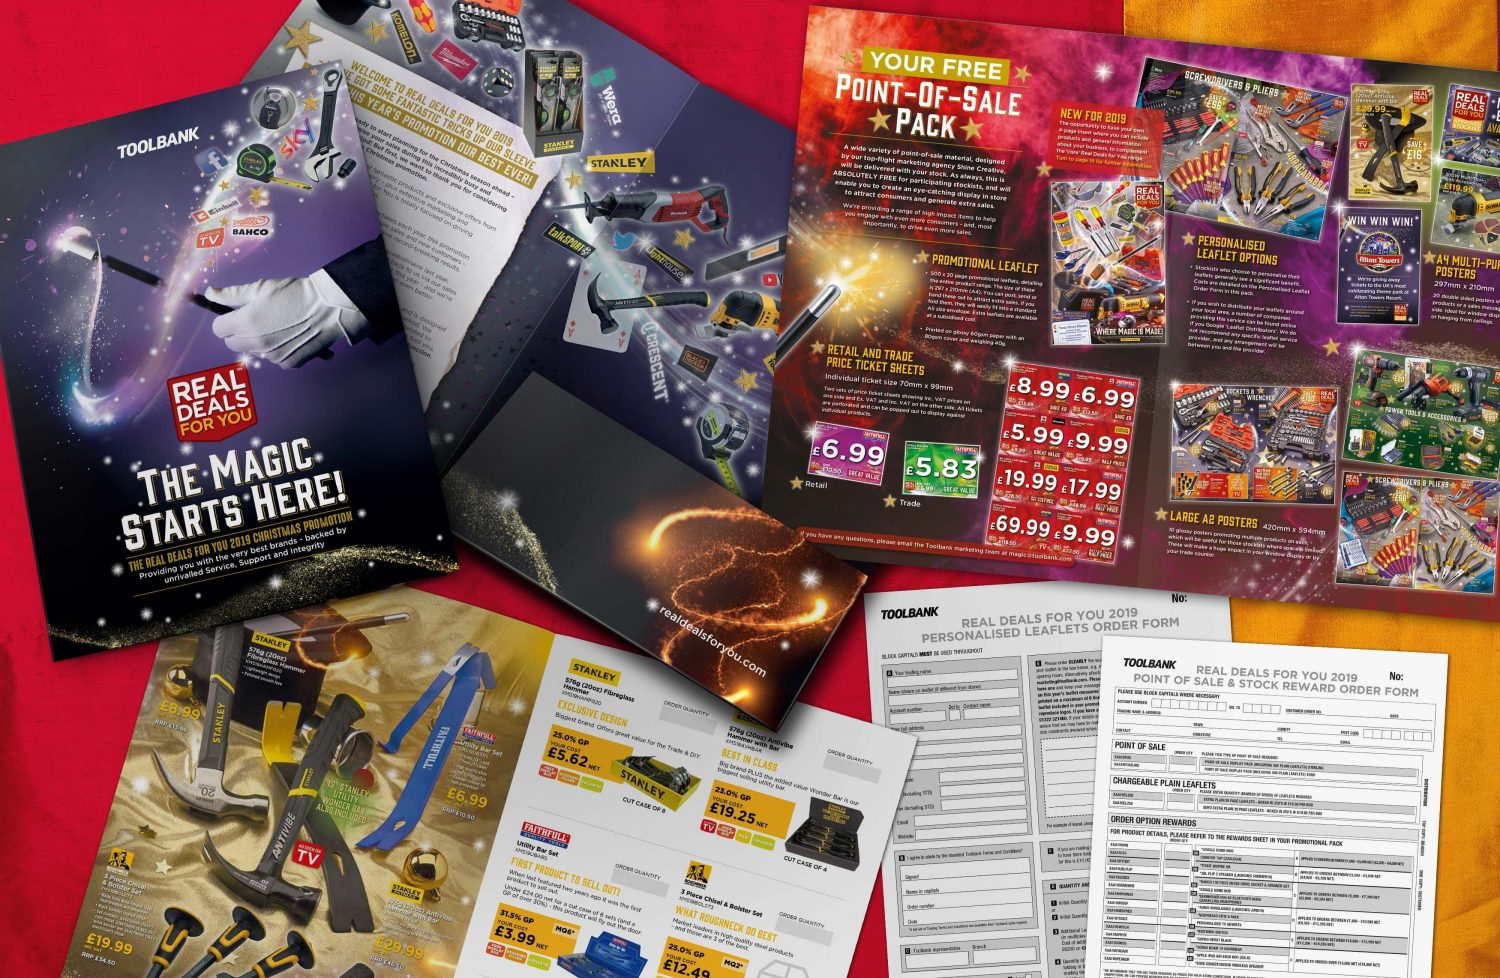 Toolbank seasonal campaign case study - sales pack